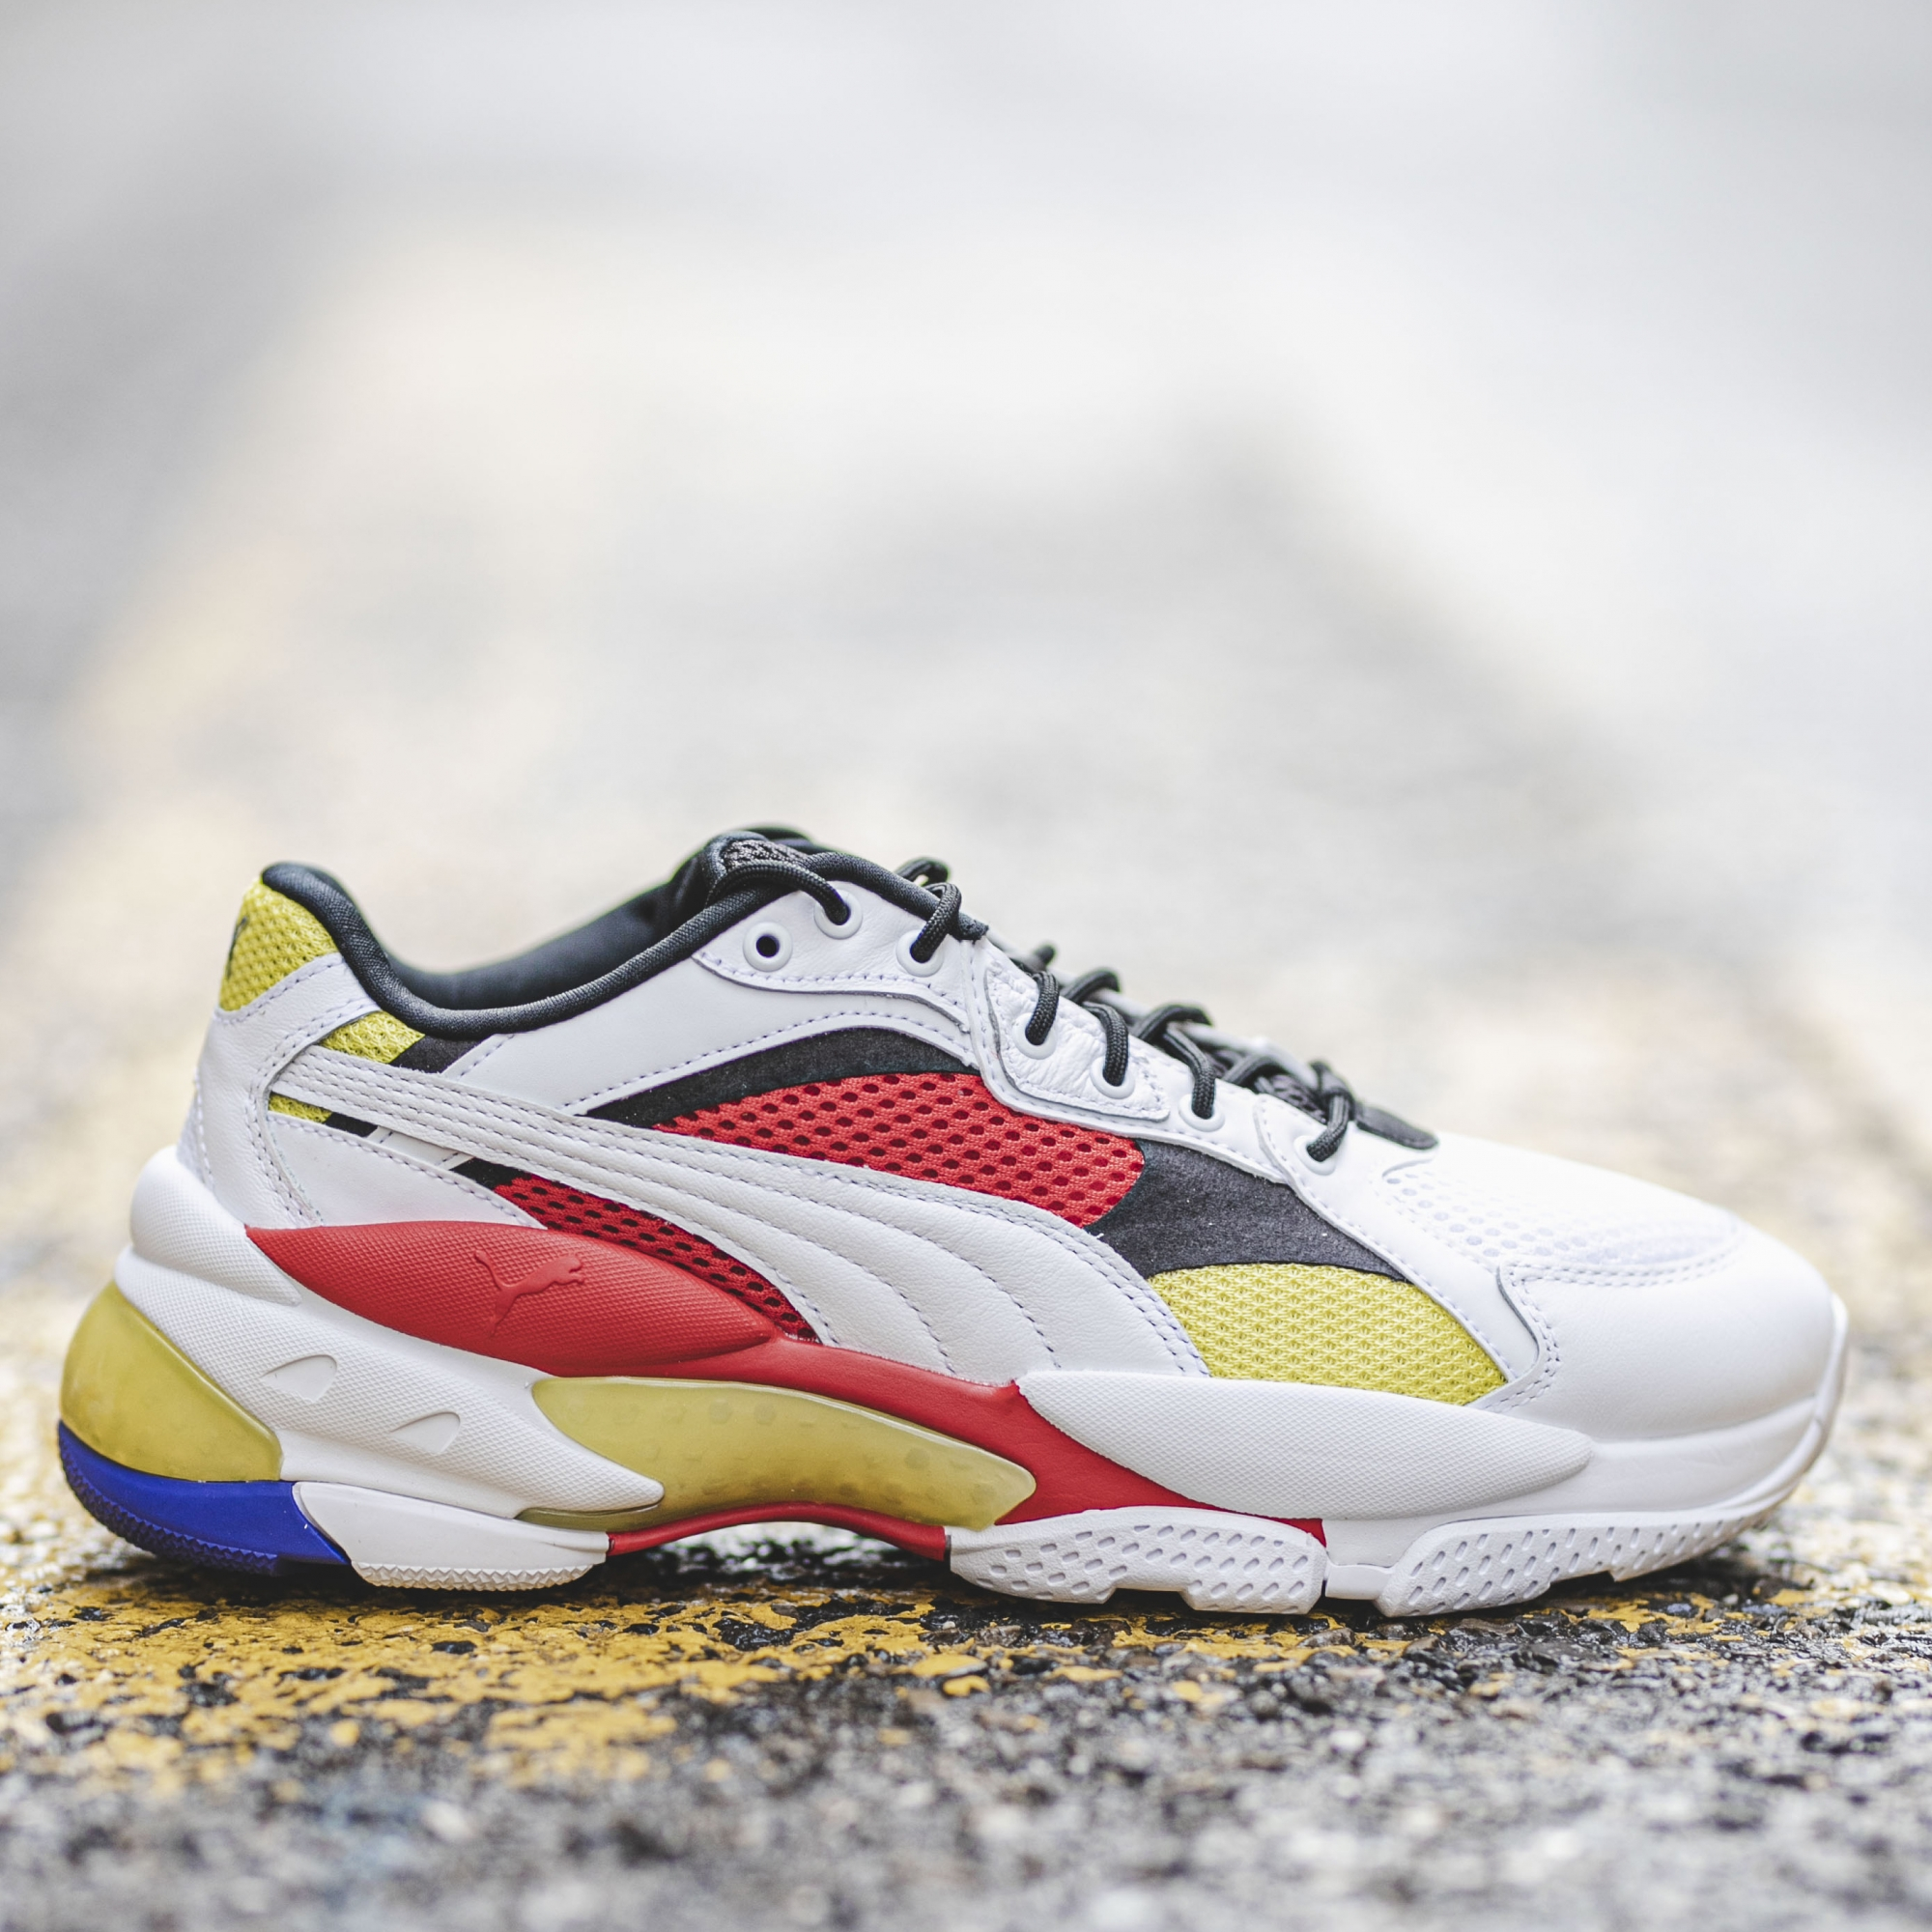 PUMA LQD CELL EPSILON.PUMA WHITE/HIGHT RISK RED - Slash Store